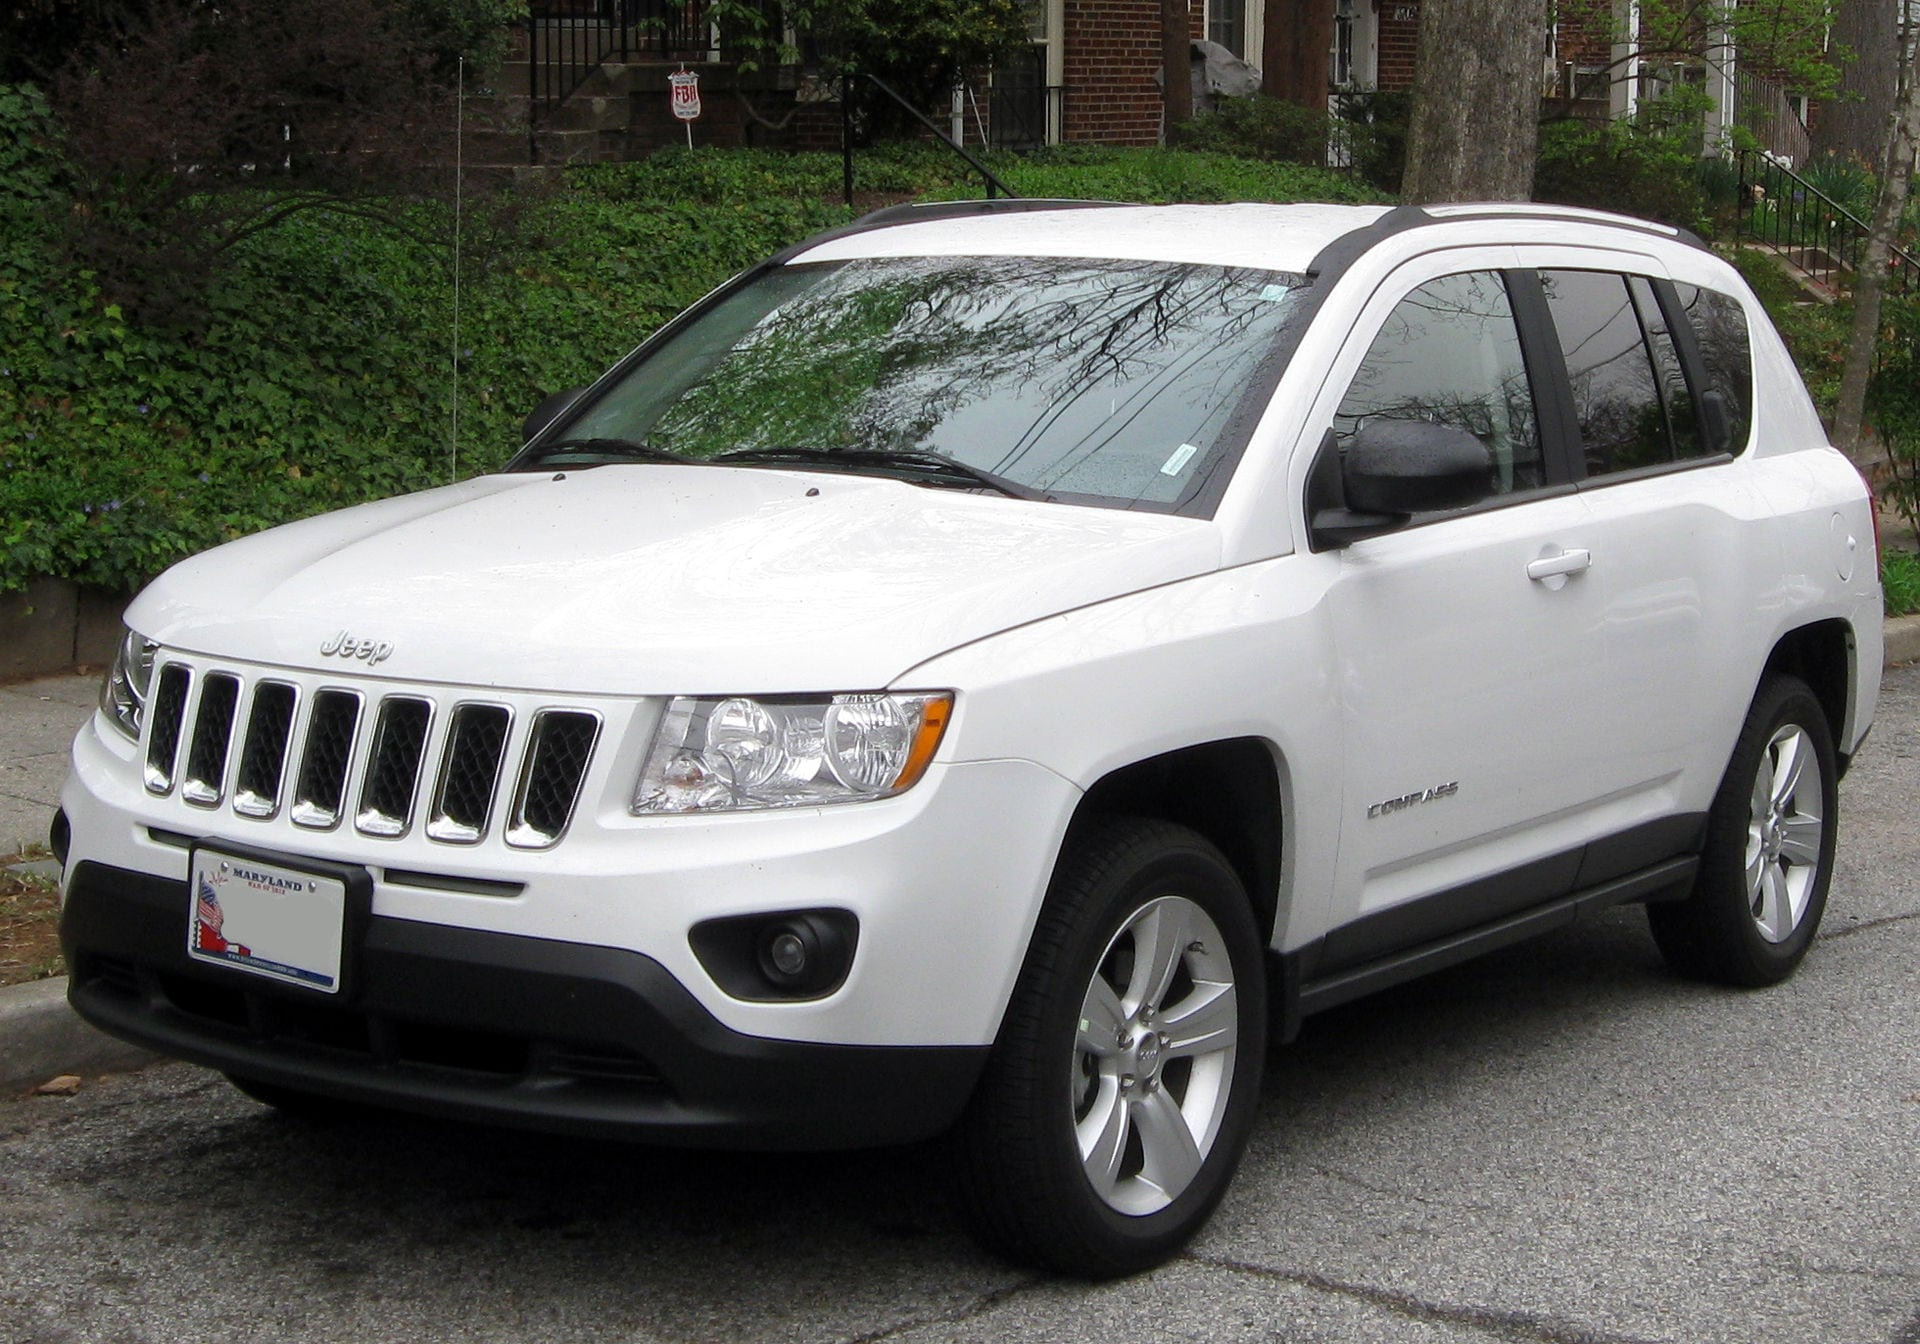 Used Jeep Compass - Dave Sinclair Chrysler Dodge Jeep Ram Eureka MO 63025